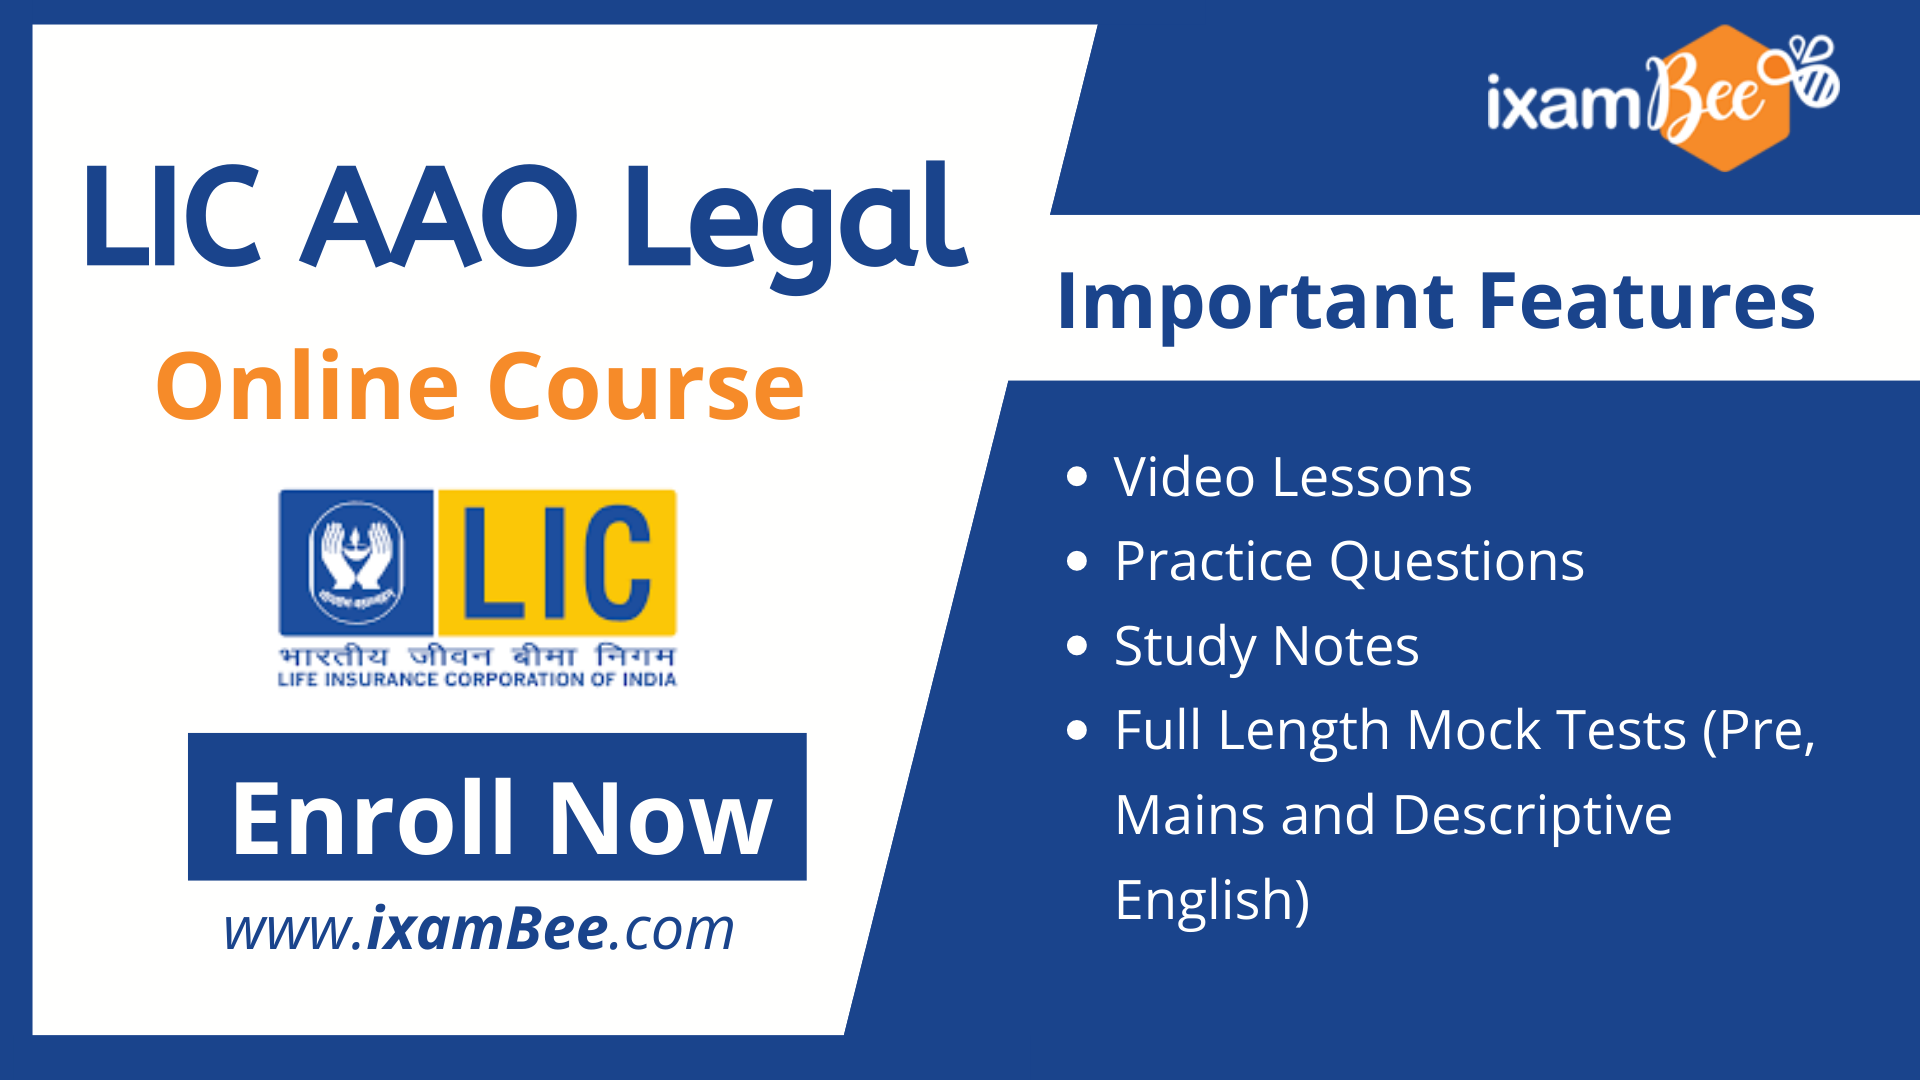 LIC AAO Legal Online Course